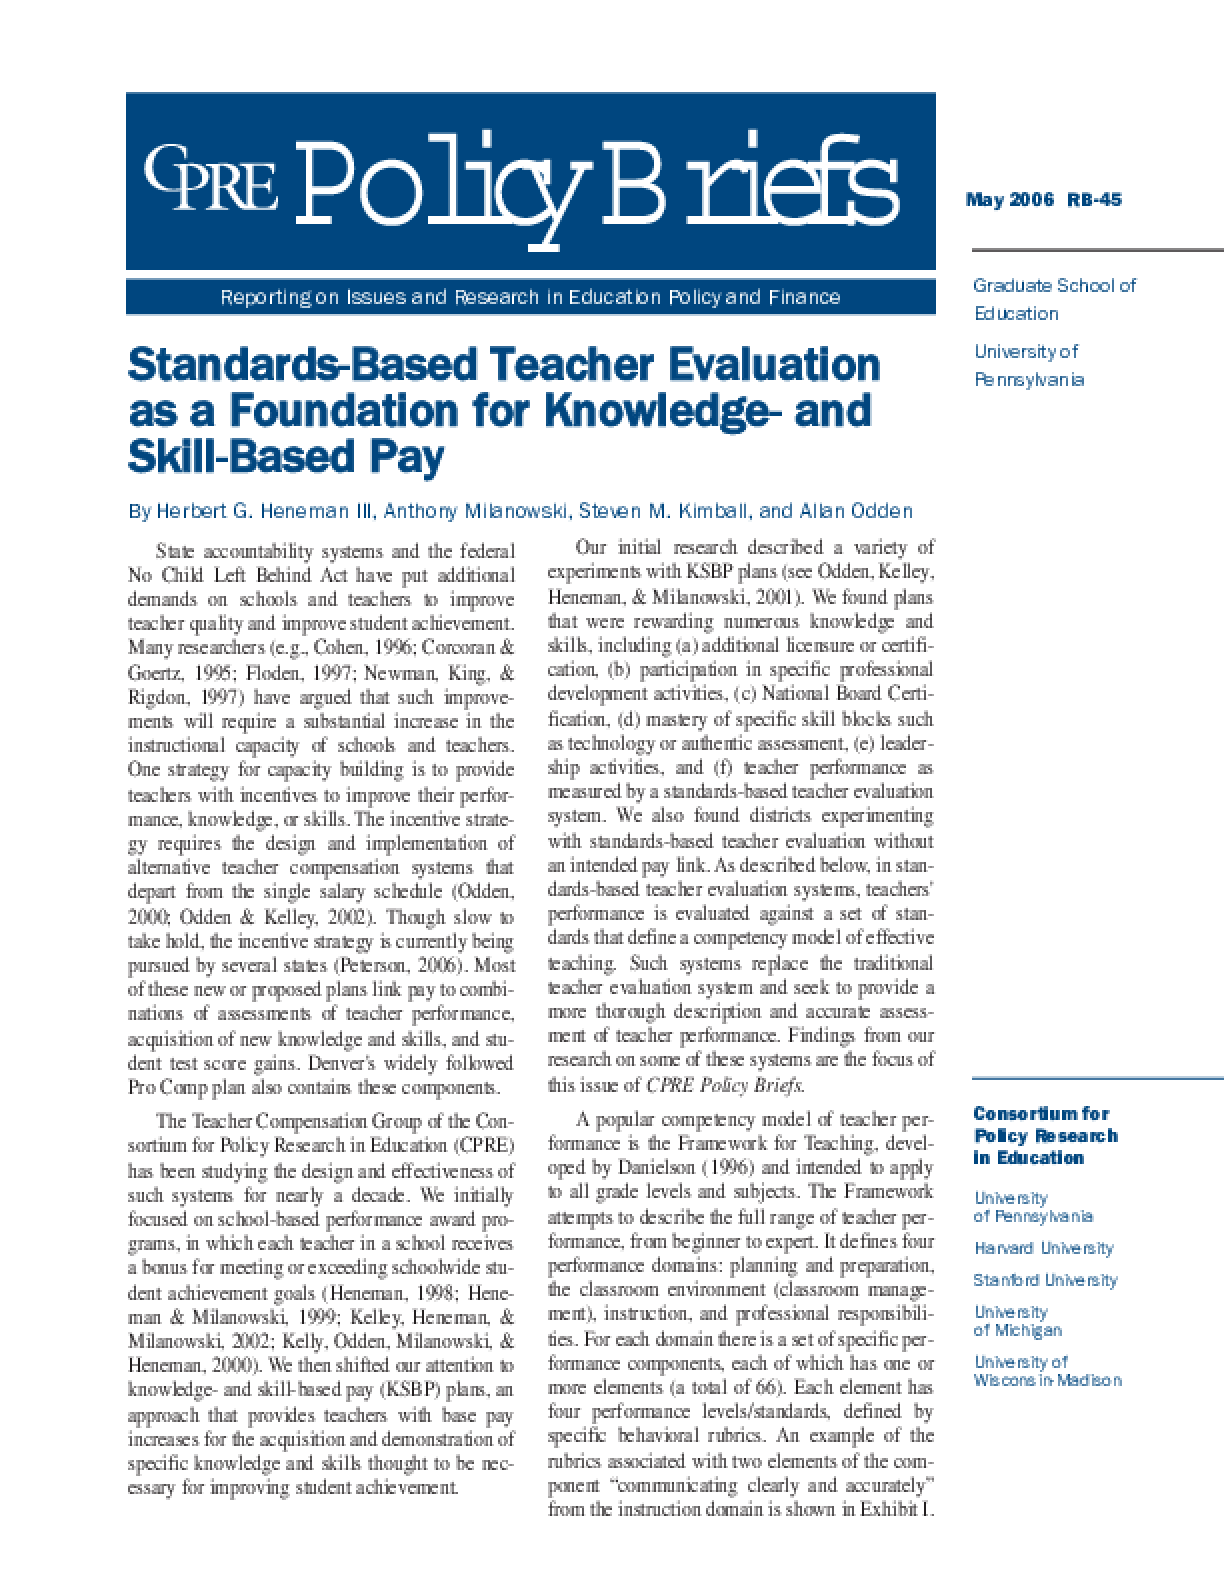 Standards-Based Teacher Evaluation as a Foundation for Knowledge- and Skill-Based Pay